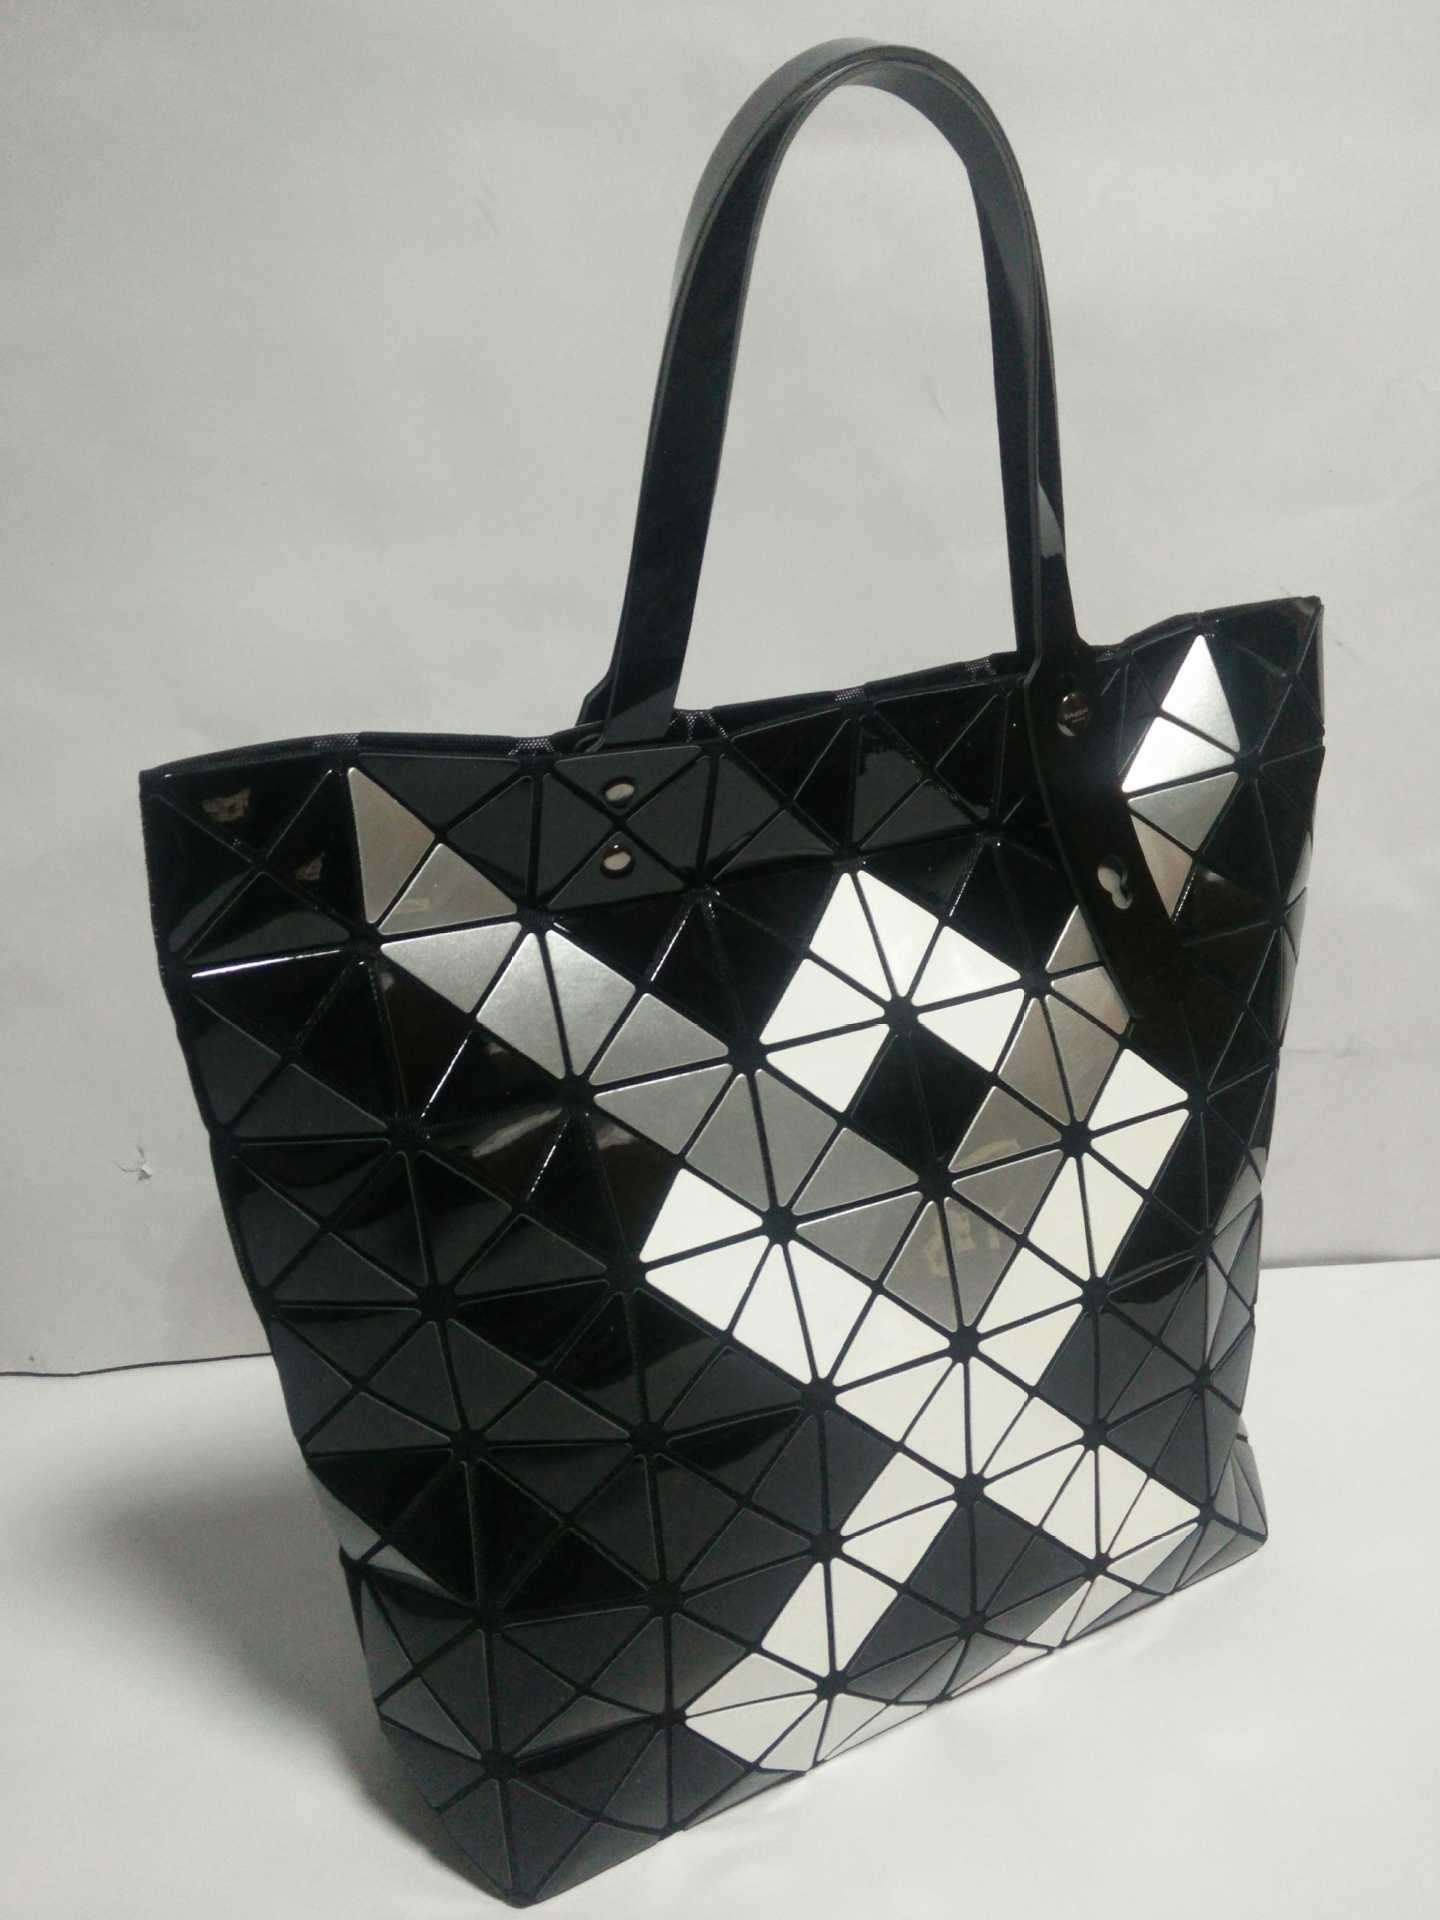 Hot Fashion Brand Women s Same As Baobao Casual Bag Ladies Bao Bao Lattice Geometric Patchwork